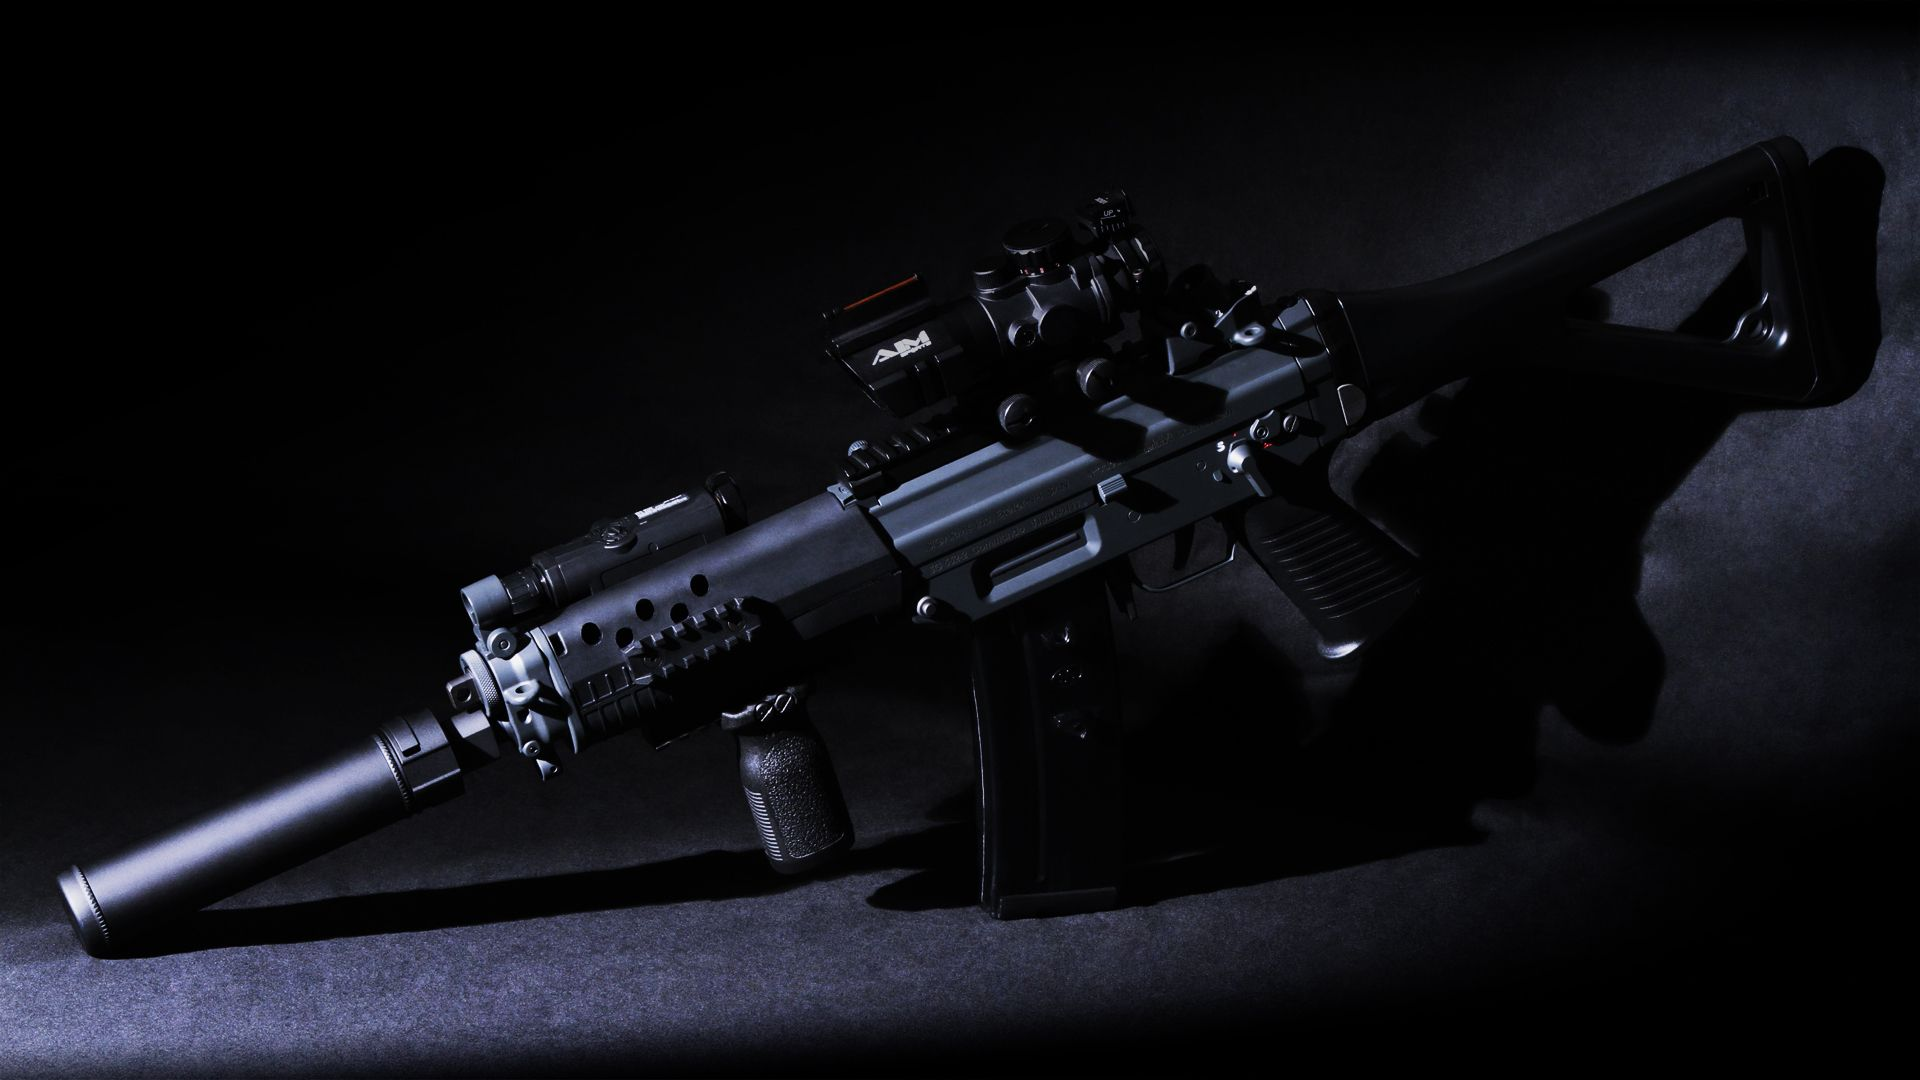 sig 552 automatic rifle weapon weapons military wallpaper